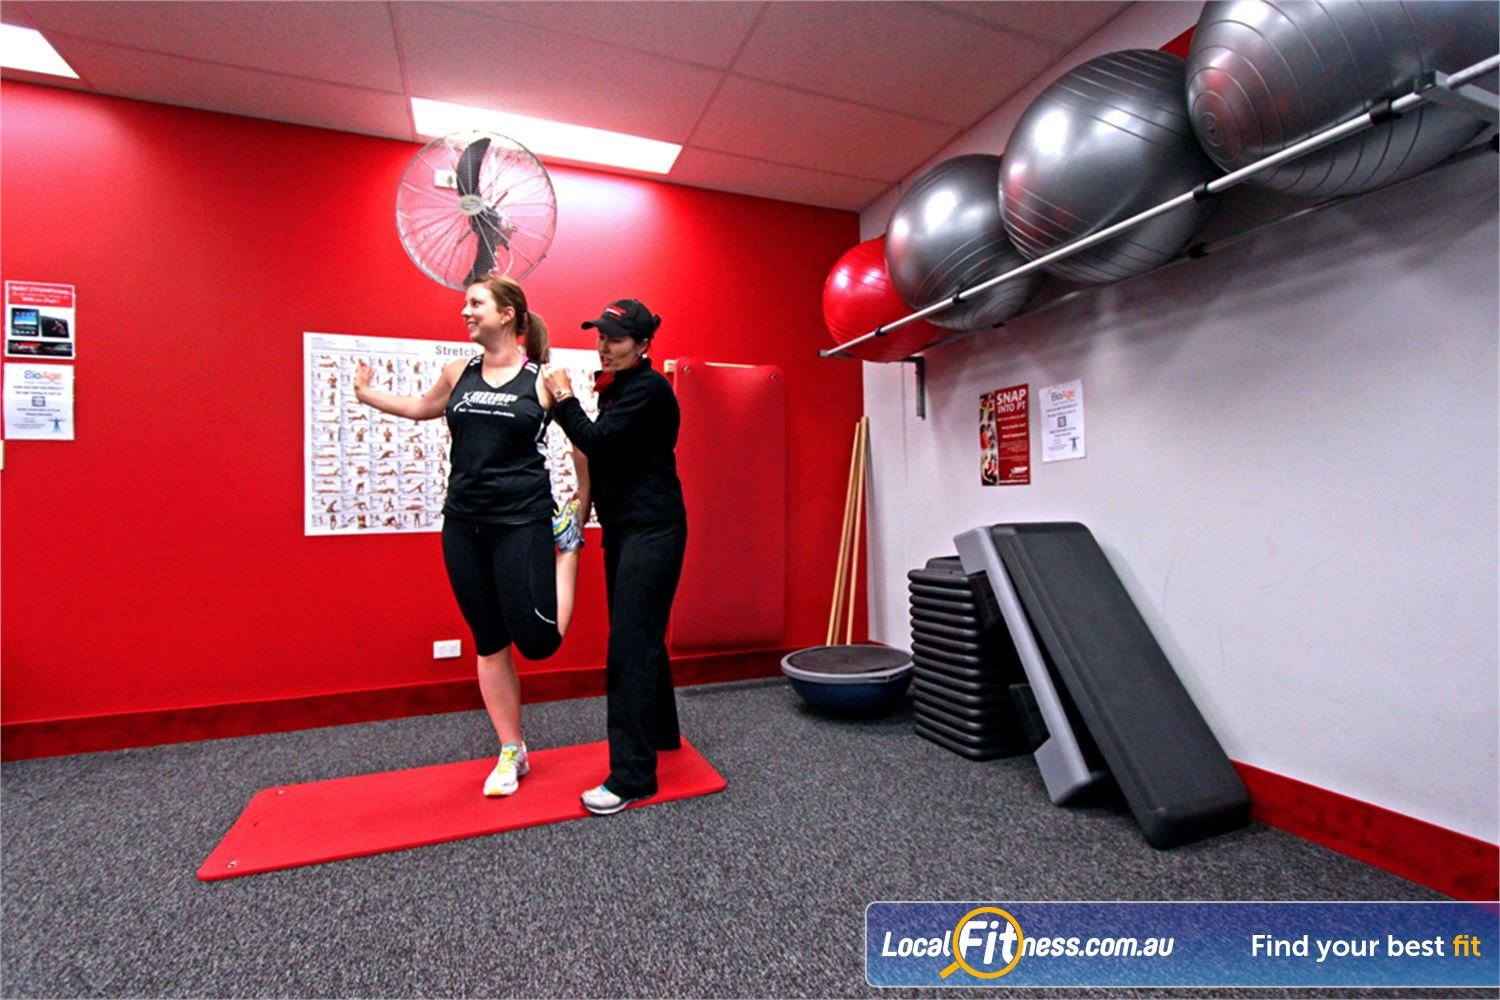 Snap Fitness Croydon Work those abs and stretch those muscles in our dedicated area.